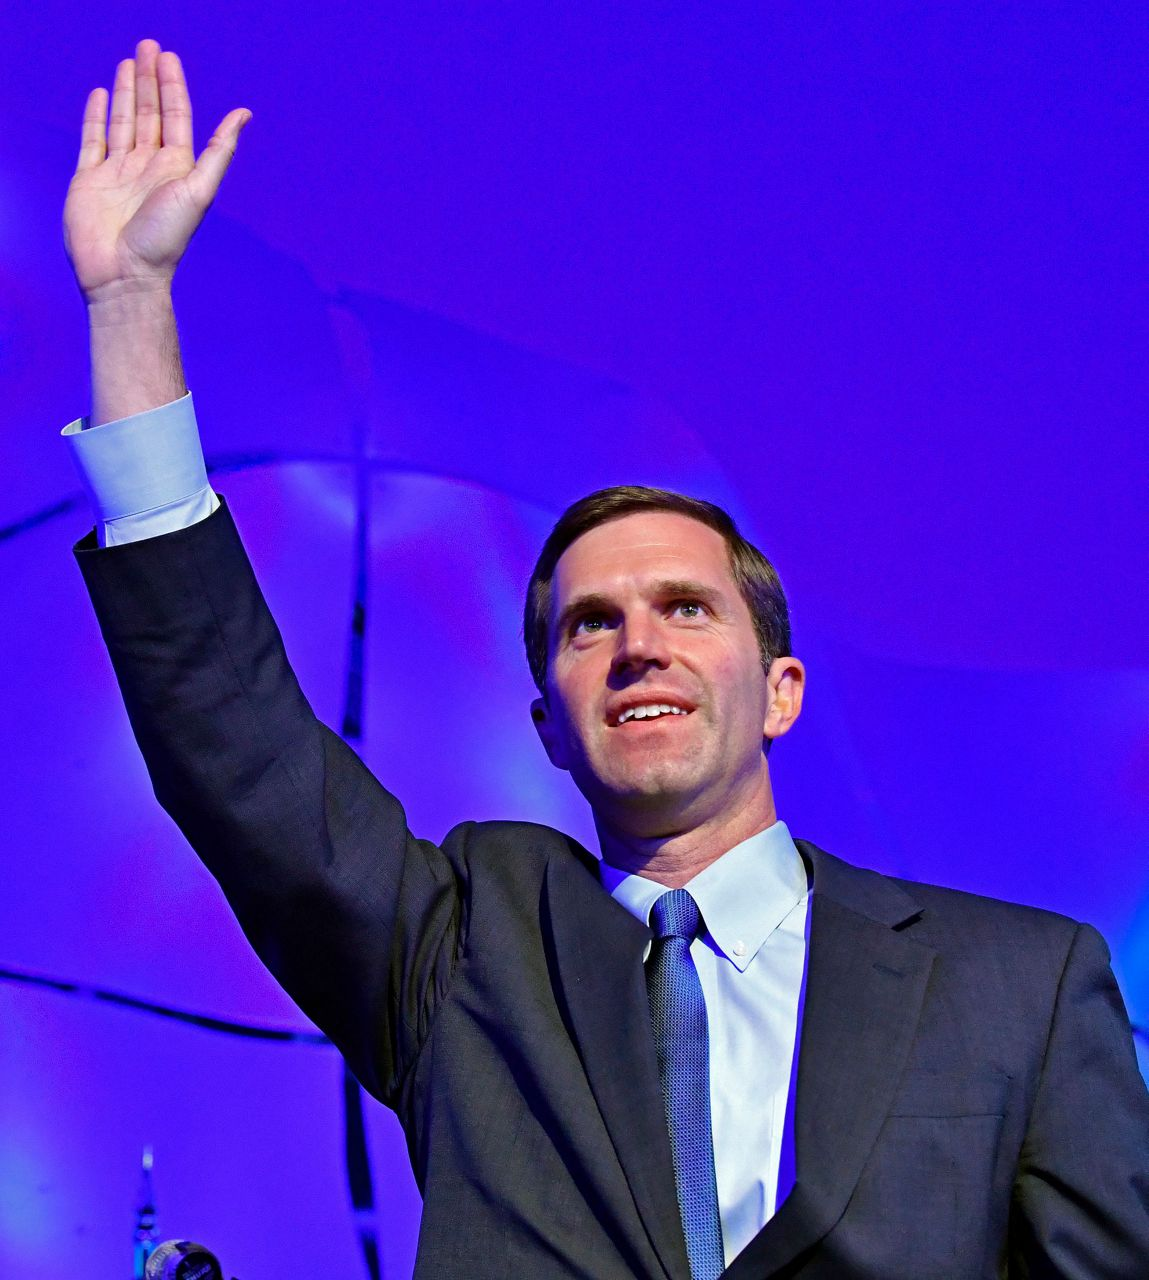 andy beshear - photo #5